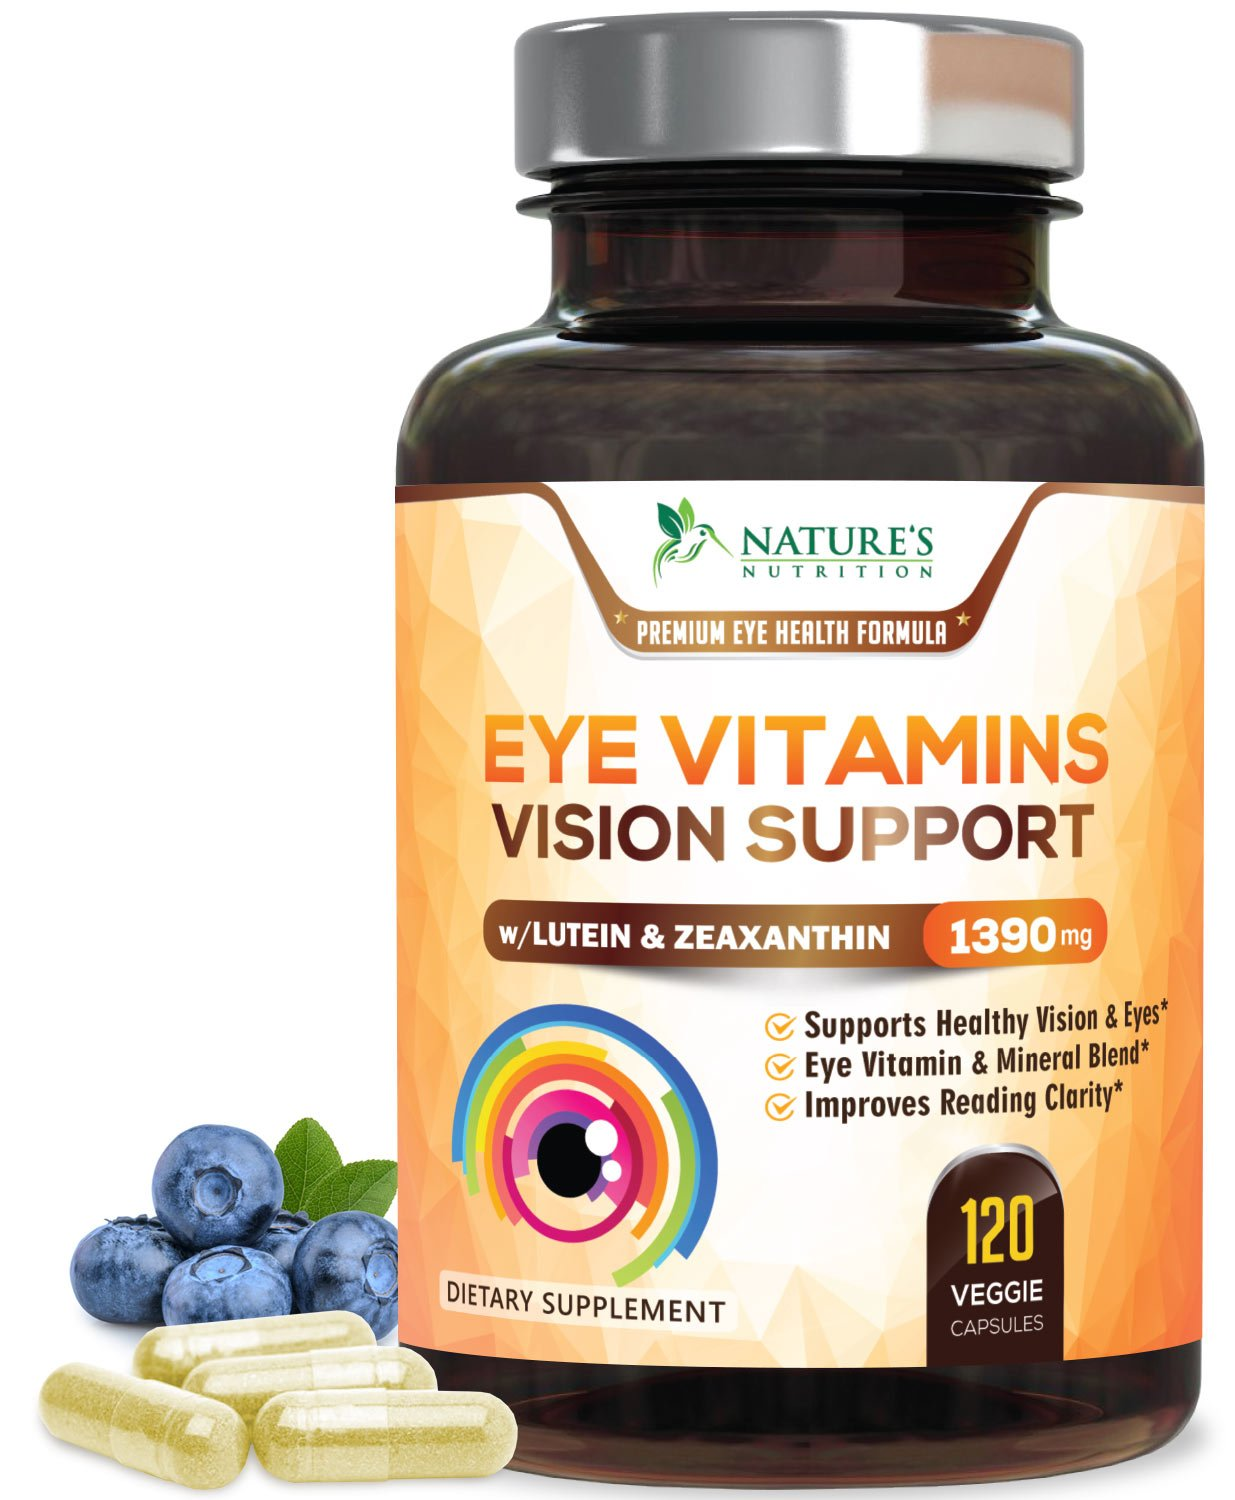 Eye Vitamins with Lutein & Zeaxanthin, Highest Potency Natural Vitamin and Mineral Supplement 1390mg - Made in USA - Best Formula for Vision Support, Dry Eyes & Macular Health - 120 Capsules by Nature's Nutrition